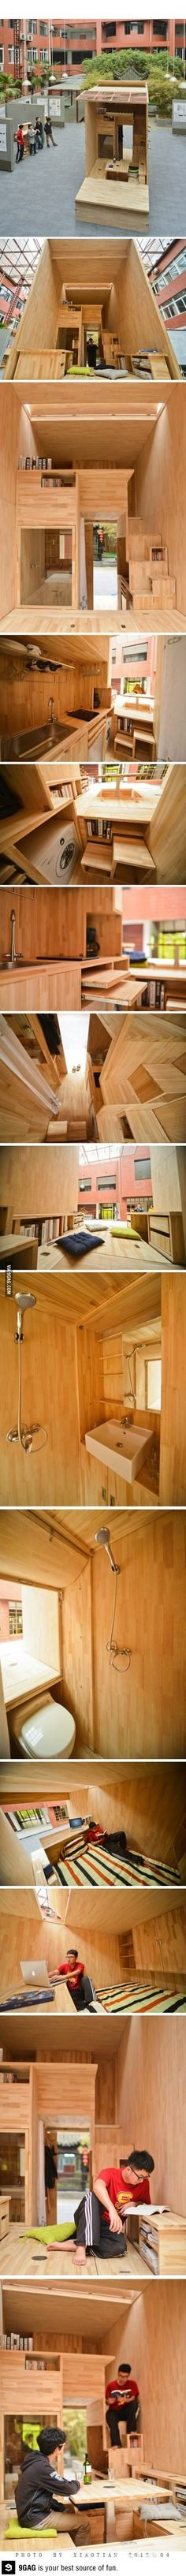 Student architect in China constructs 75 ft² room